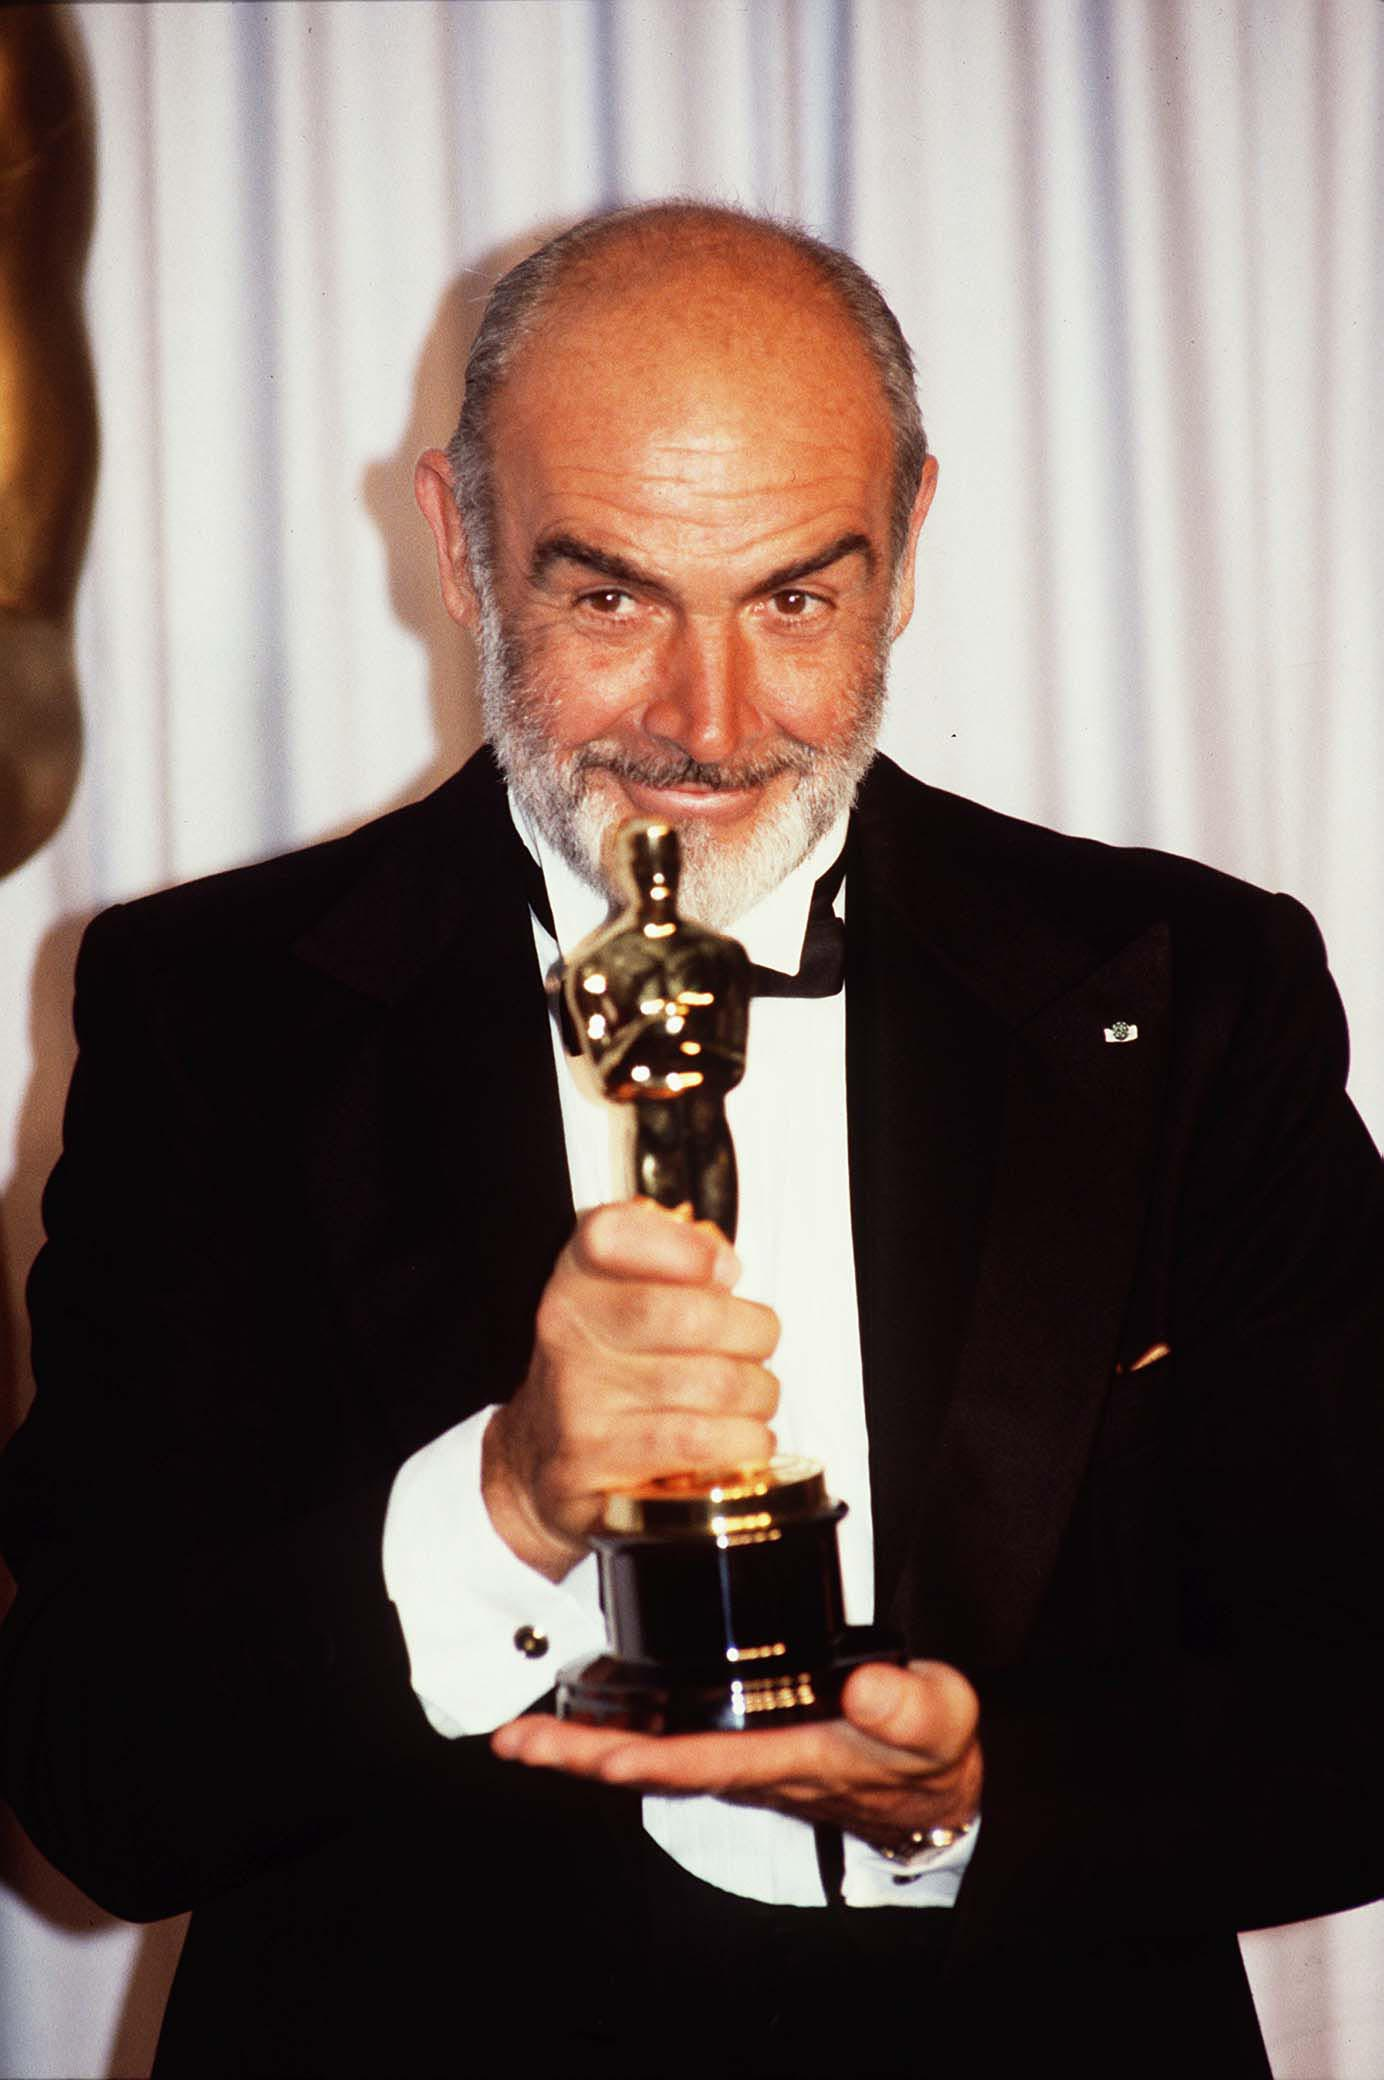 Veteran actor Sean Connery, the first actor to play James Bond, won Best Supporting Actor during the 60th Annual Academy Awards in 1988. | Source: Getty Images